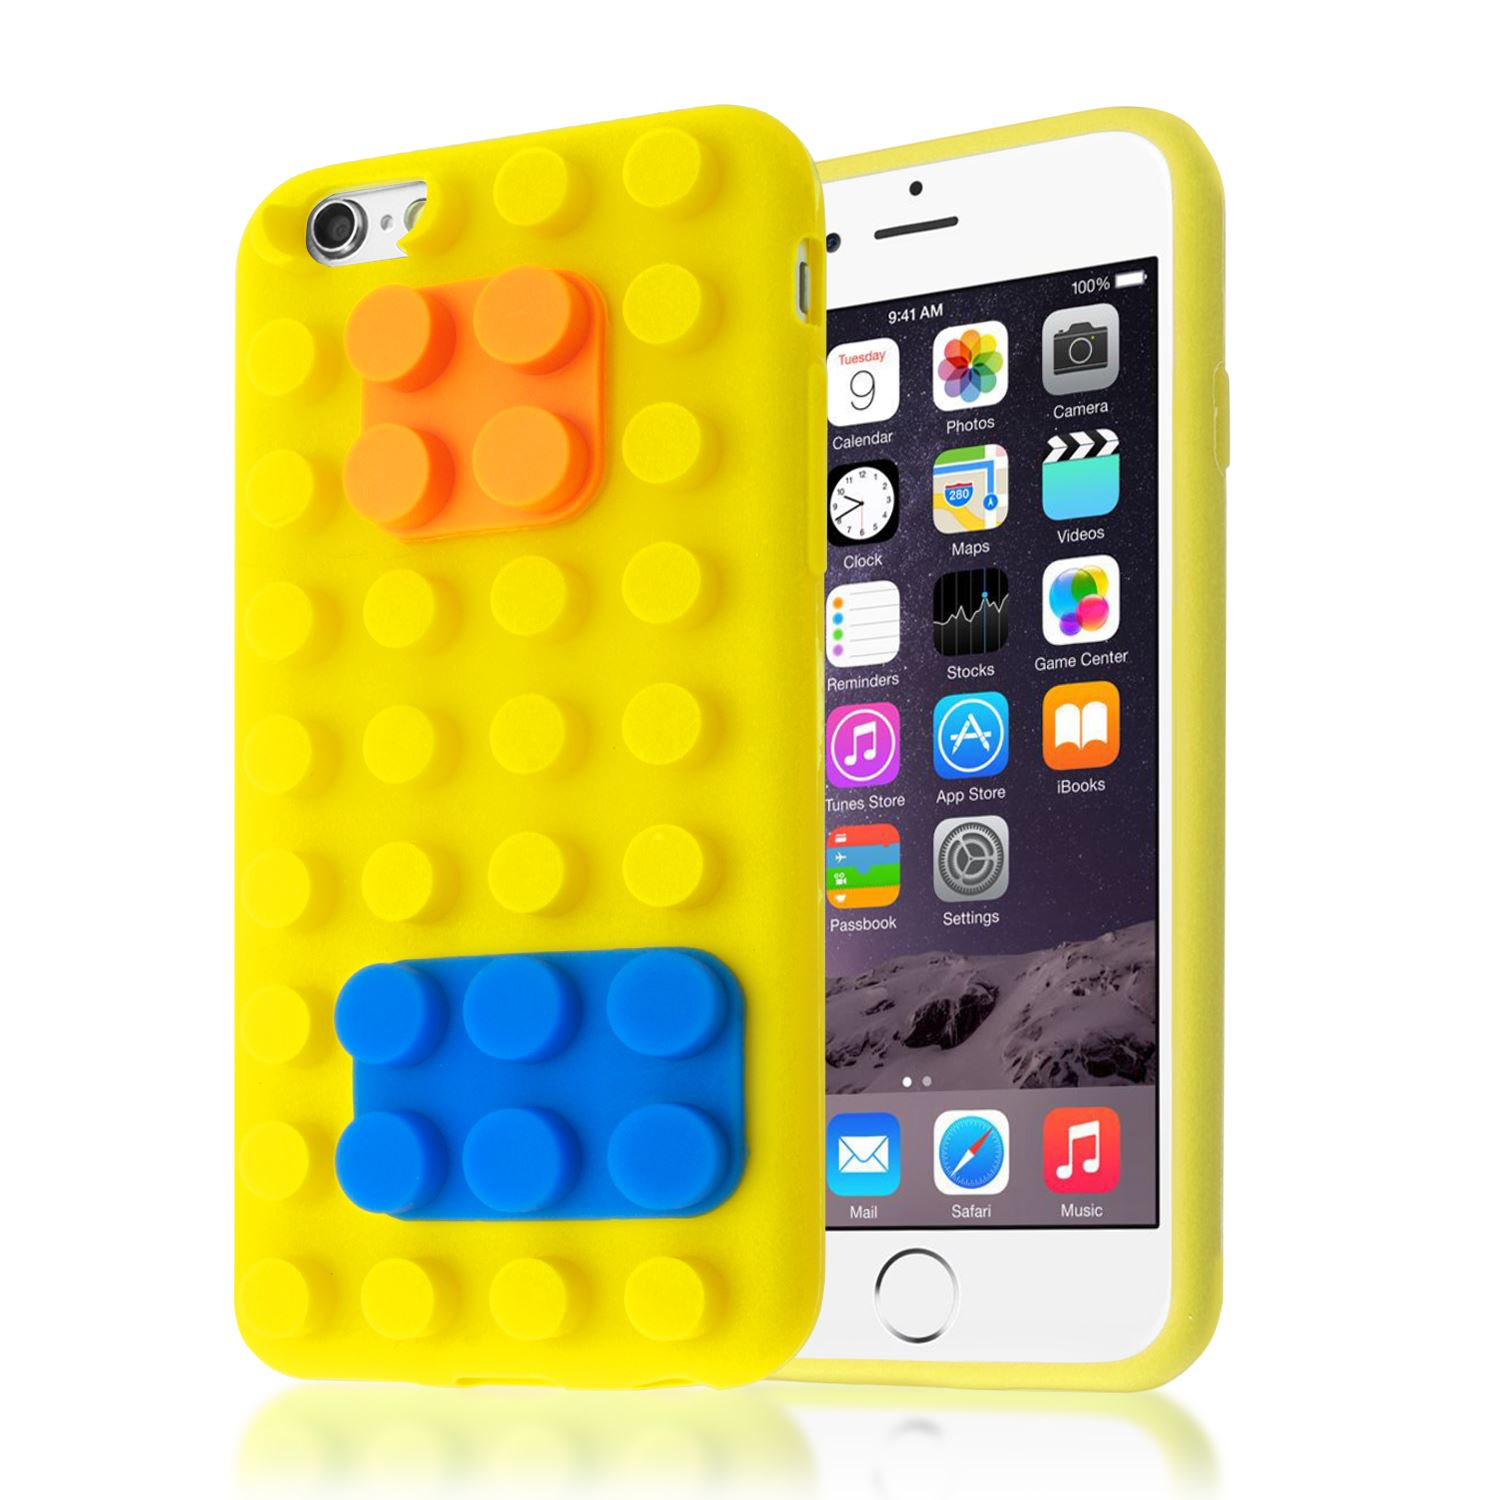 3D BUILDING LEGO BLOCKS BRICK SOFT SILICONE STAND COVER